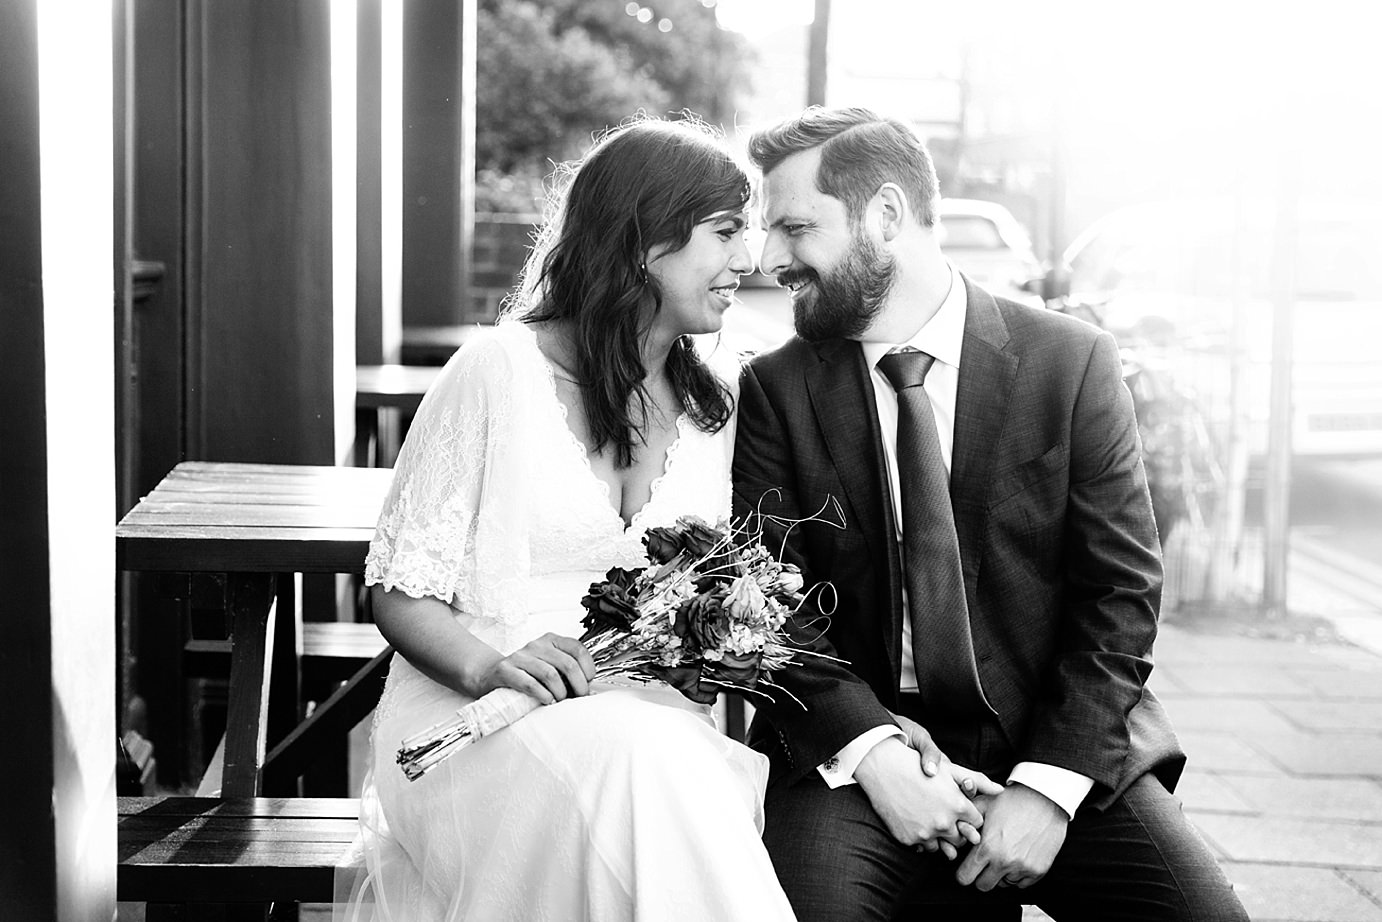 Londesborough pub wedding photography bride and groom smile together